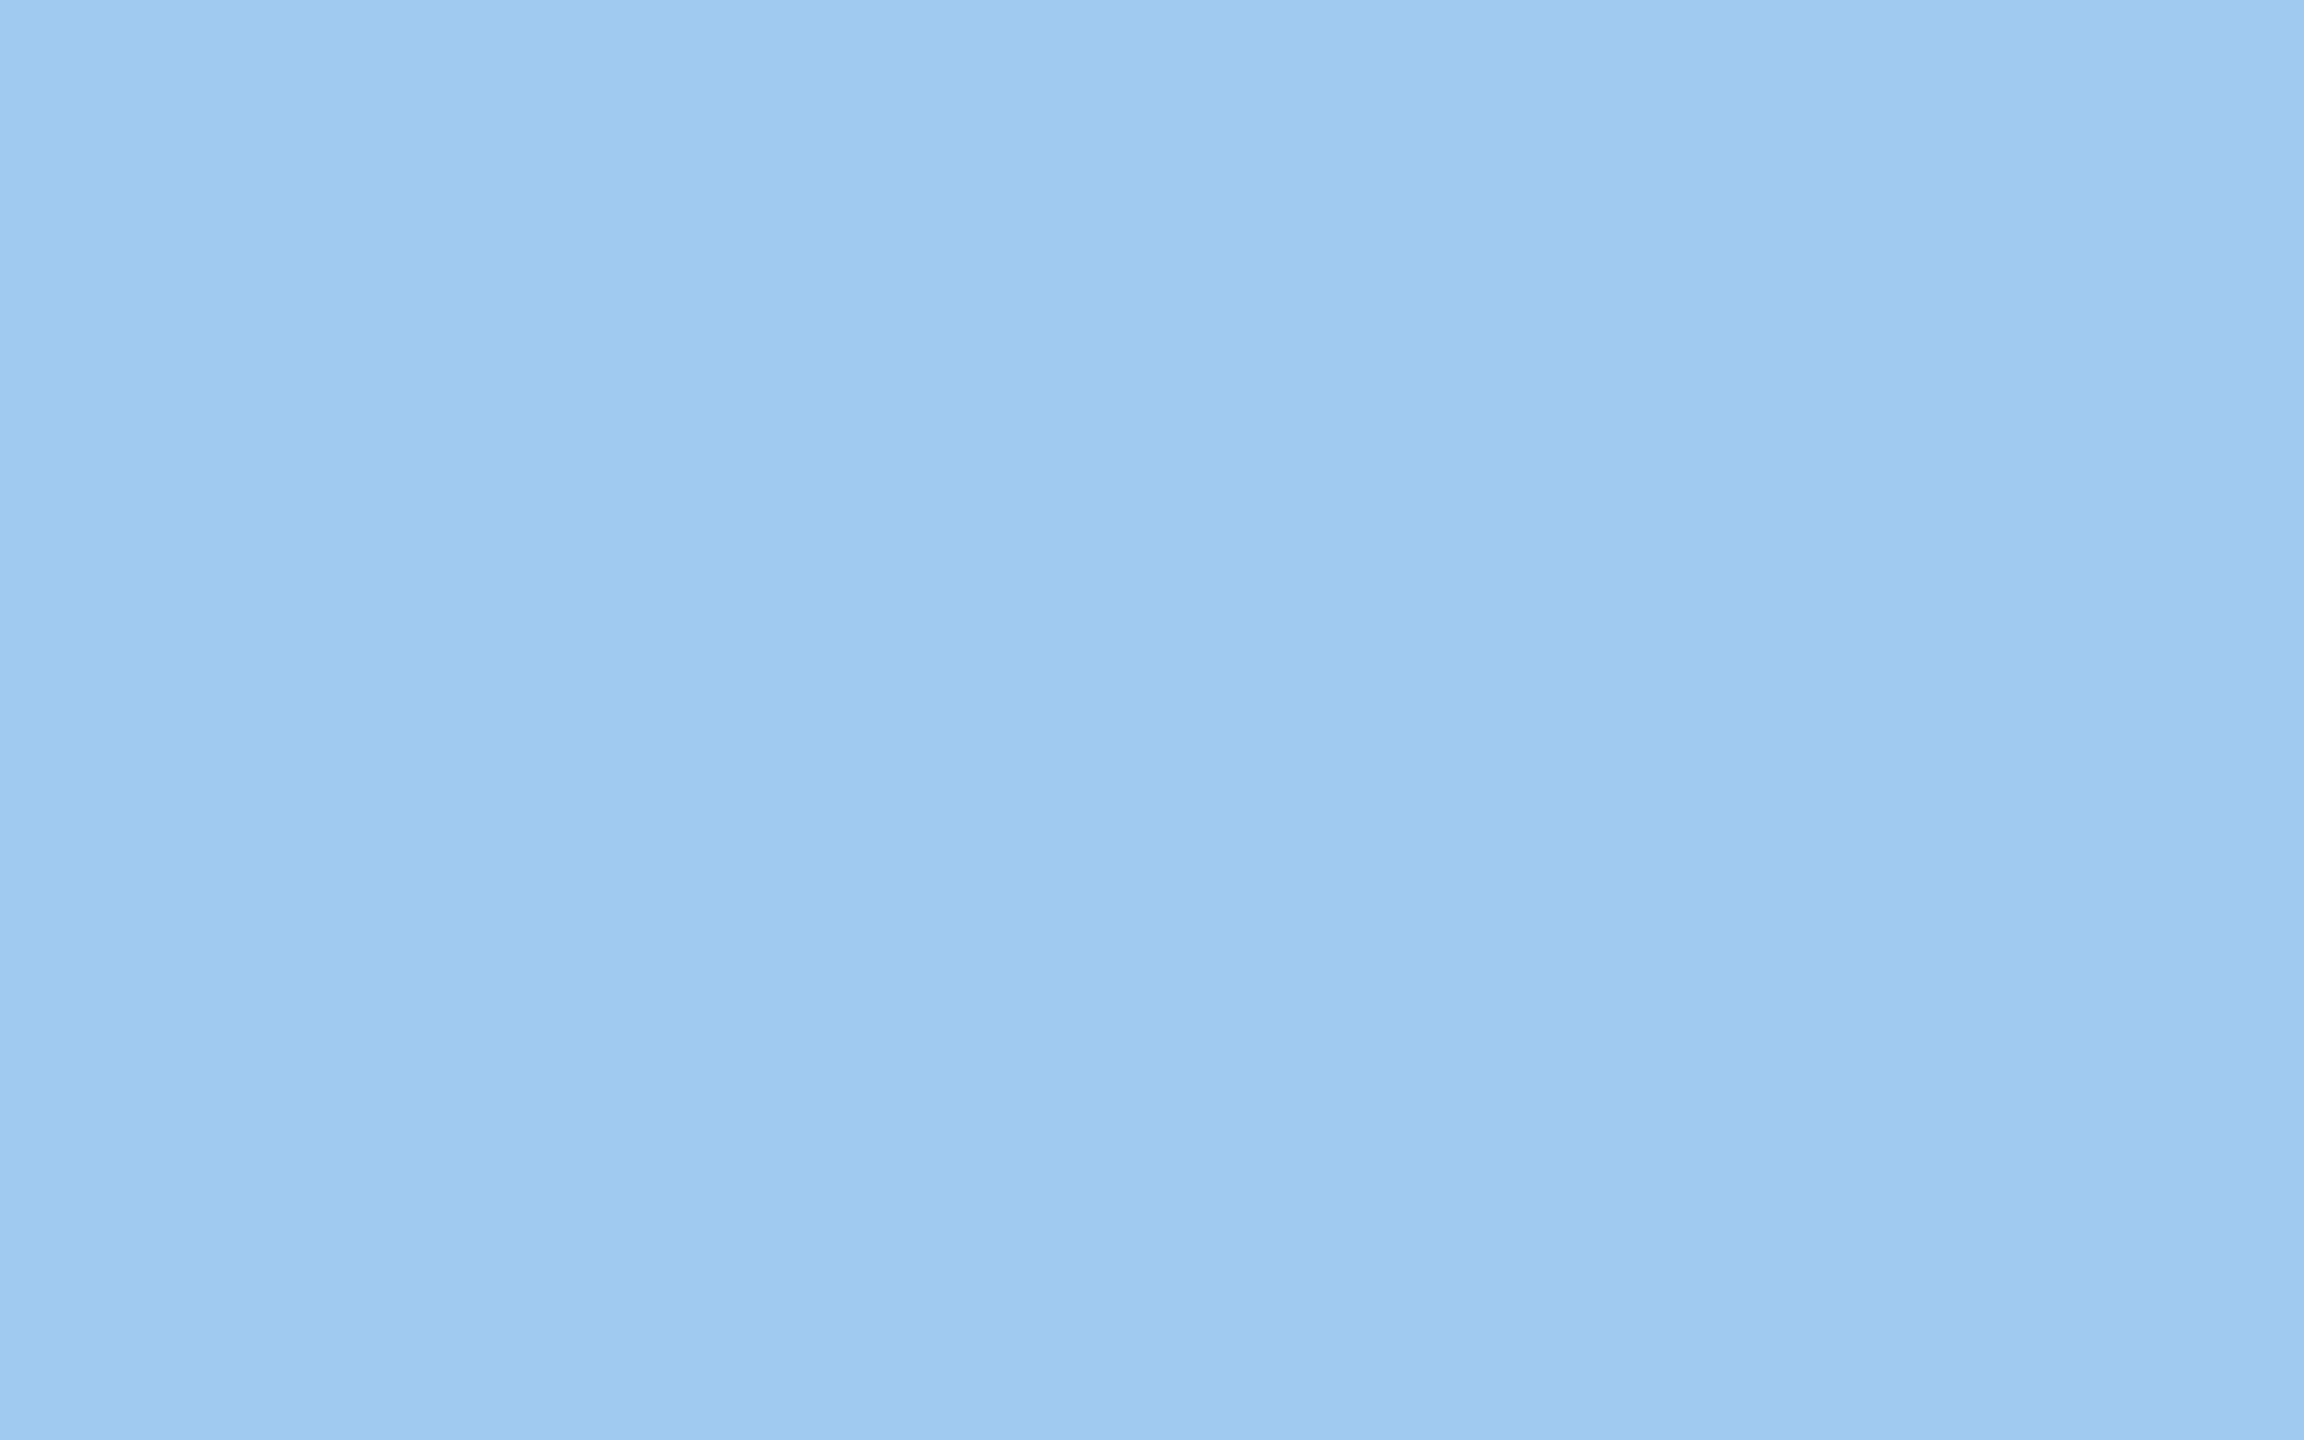 2304x1440 Baby Blue Eyes Solid Color Background